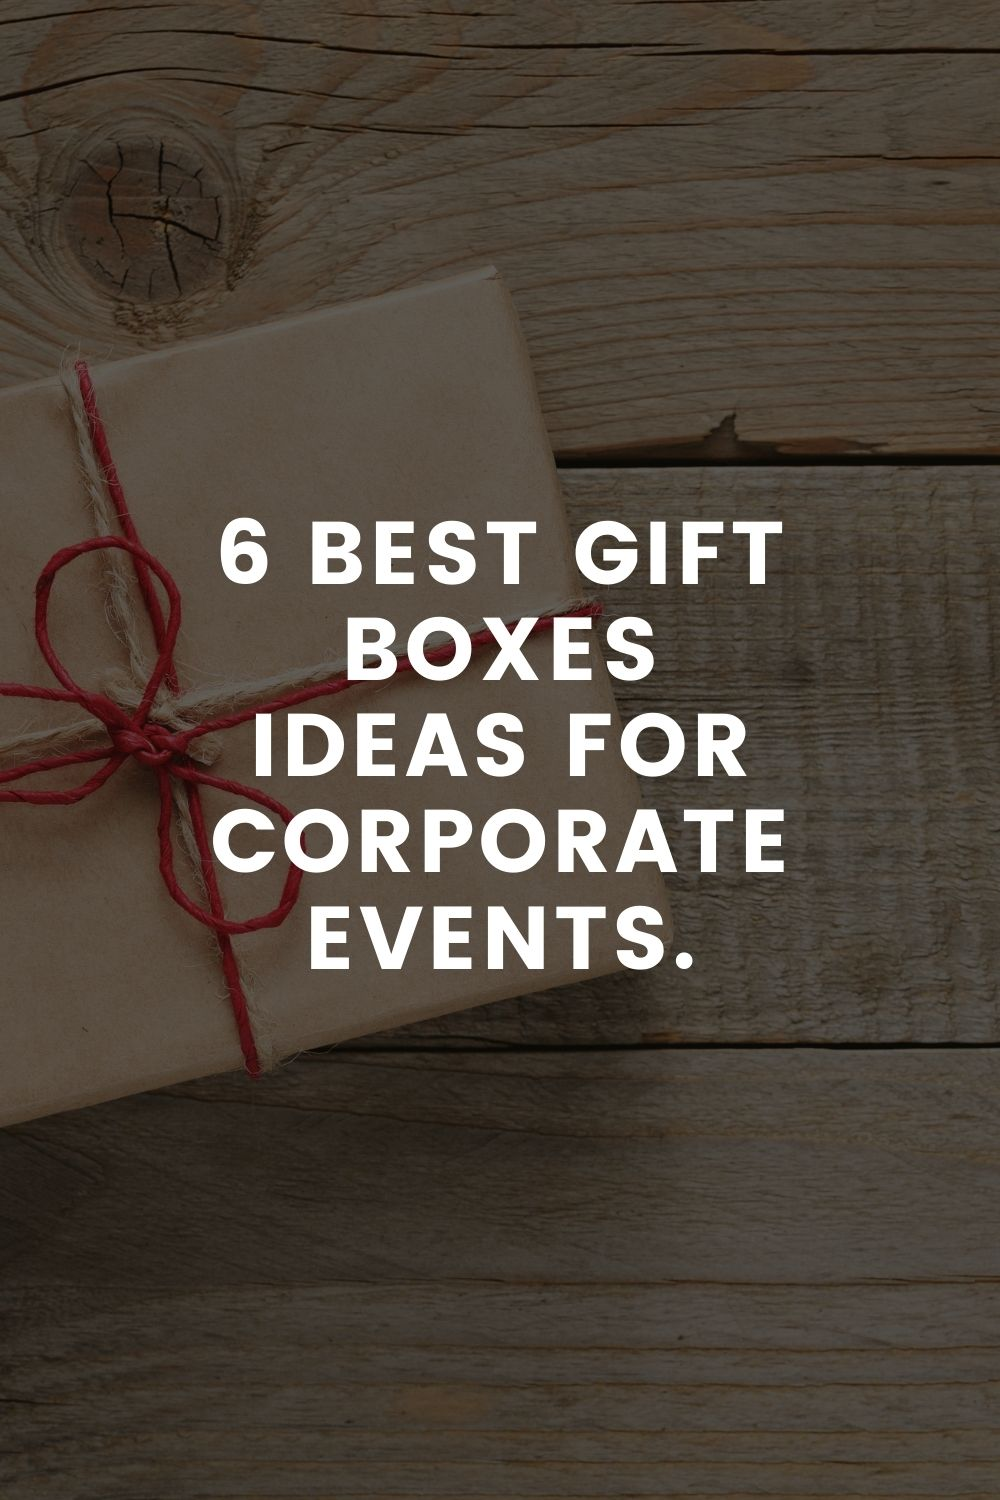 6 Best Gift Boxes Ideas For Corporate Events.